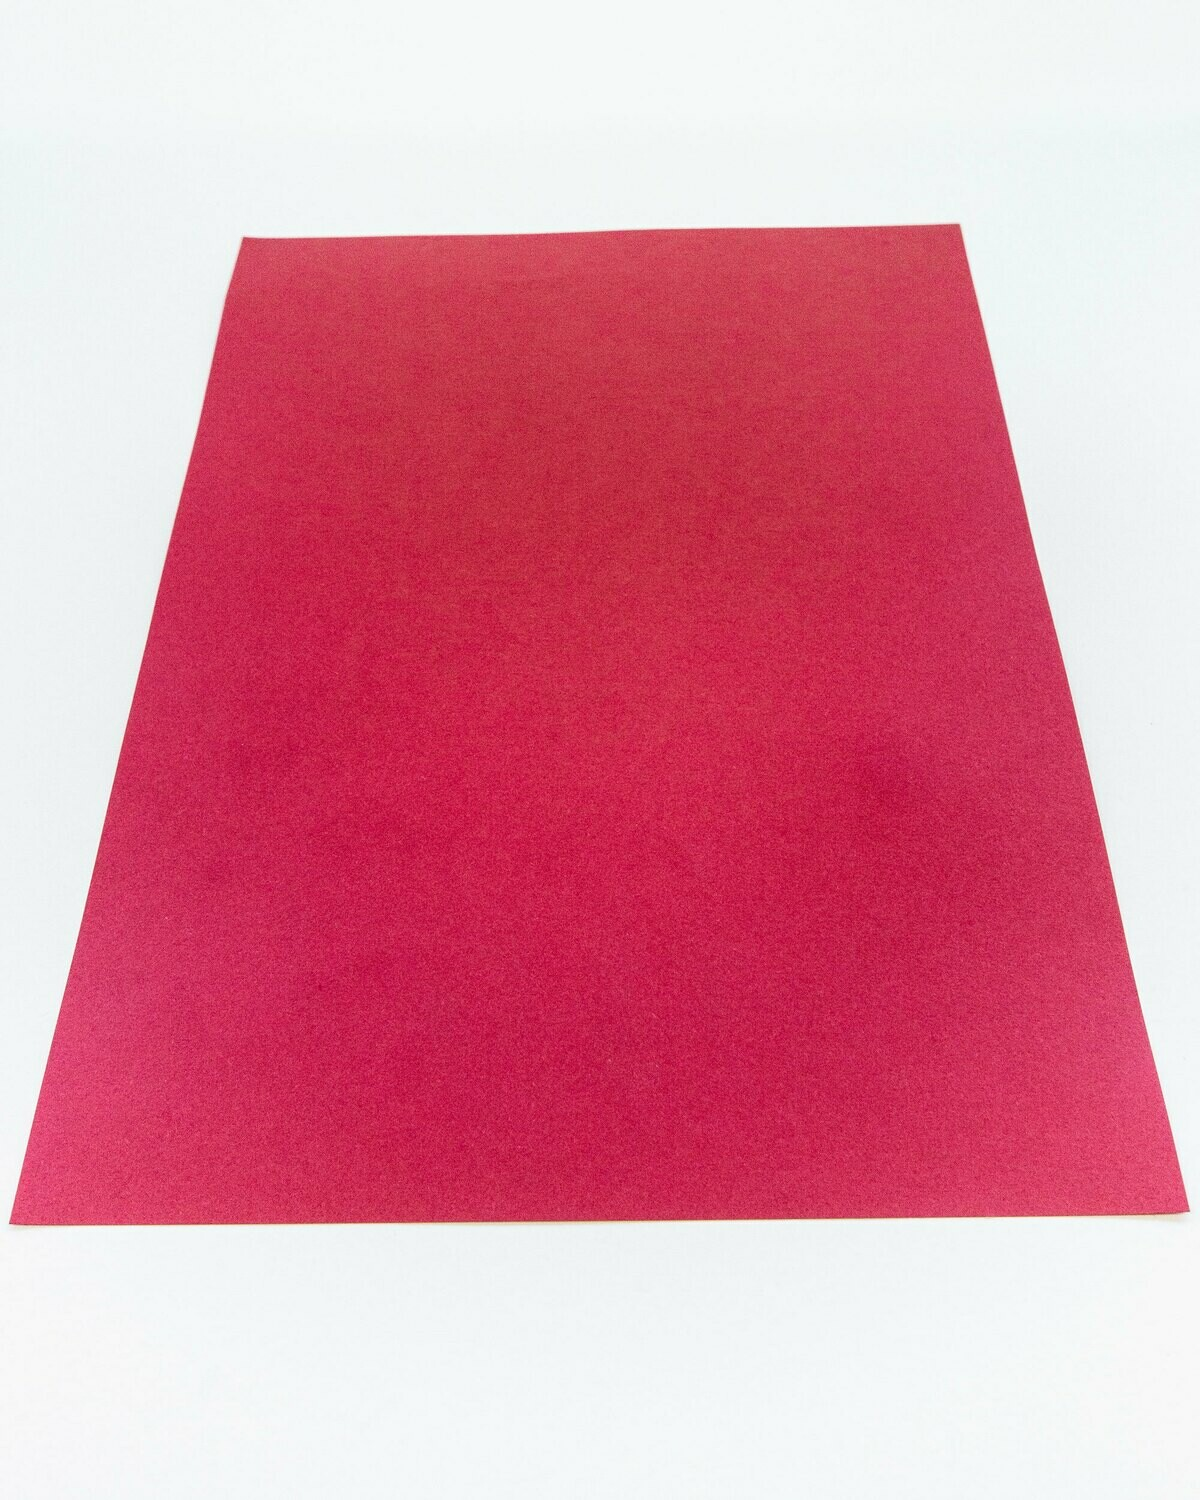 Cardstock, Maya, 54Lb Red, A4, Single